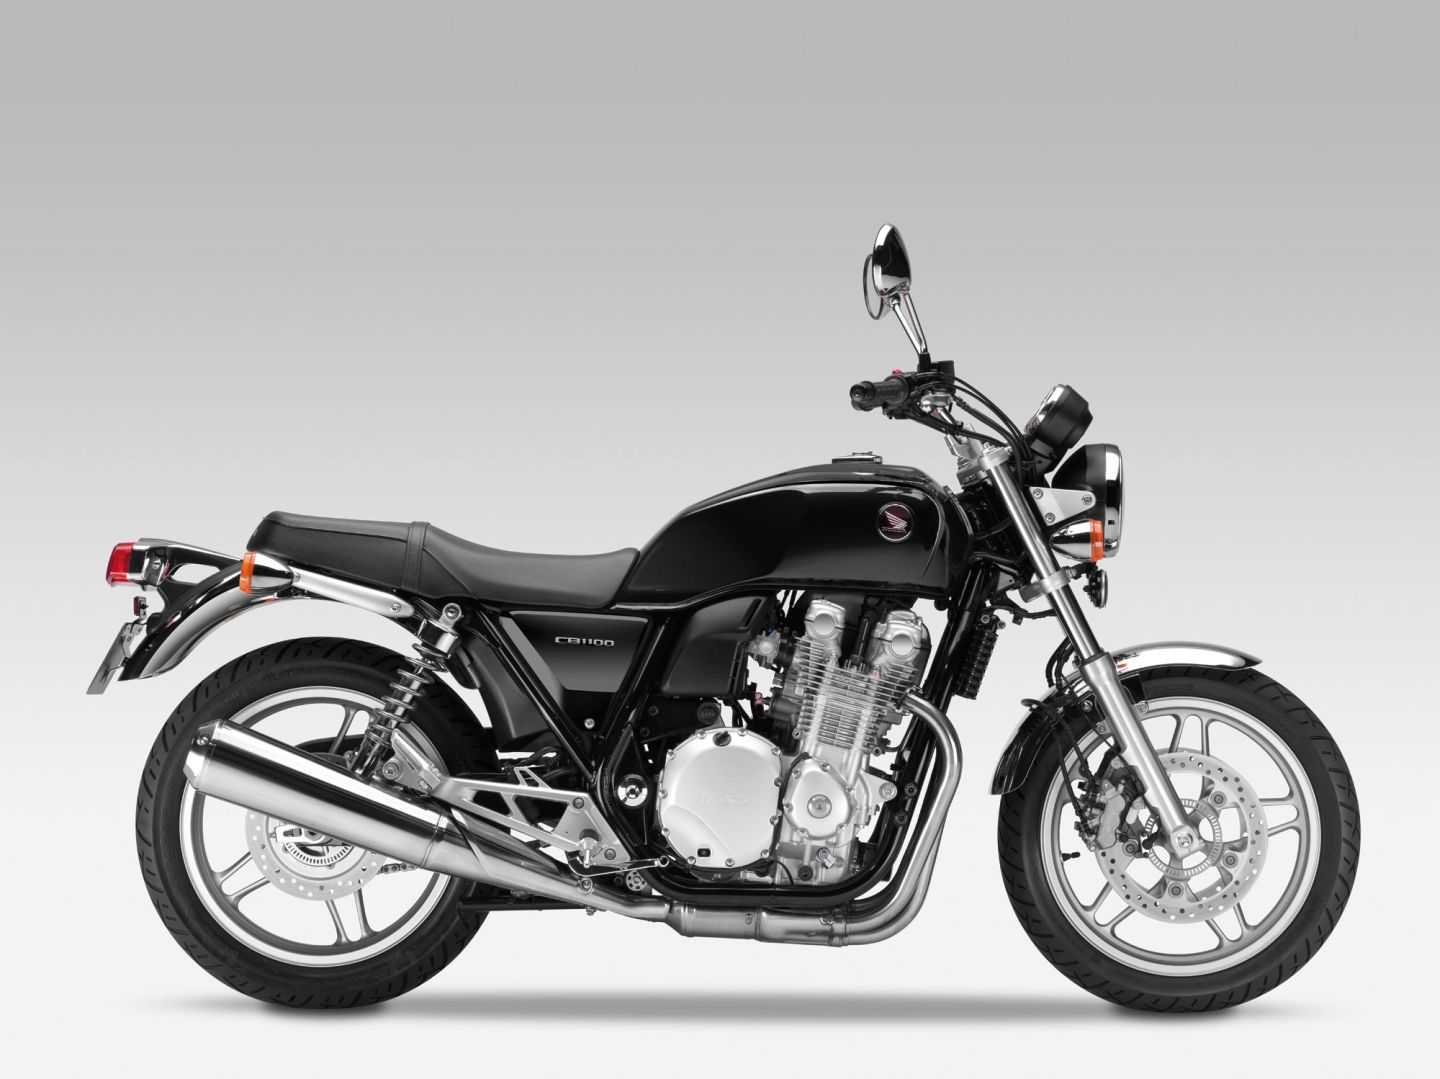 2013 honda cb1100 screams classic attitude autoevolution. Black Bedroom Furniture Sets. Home Design Ideas